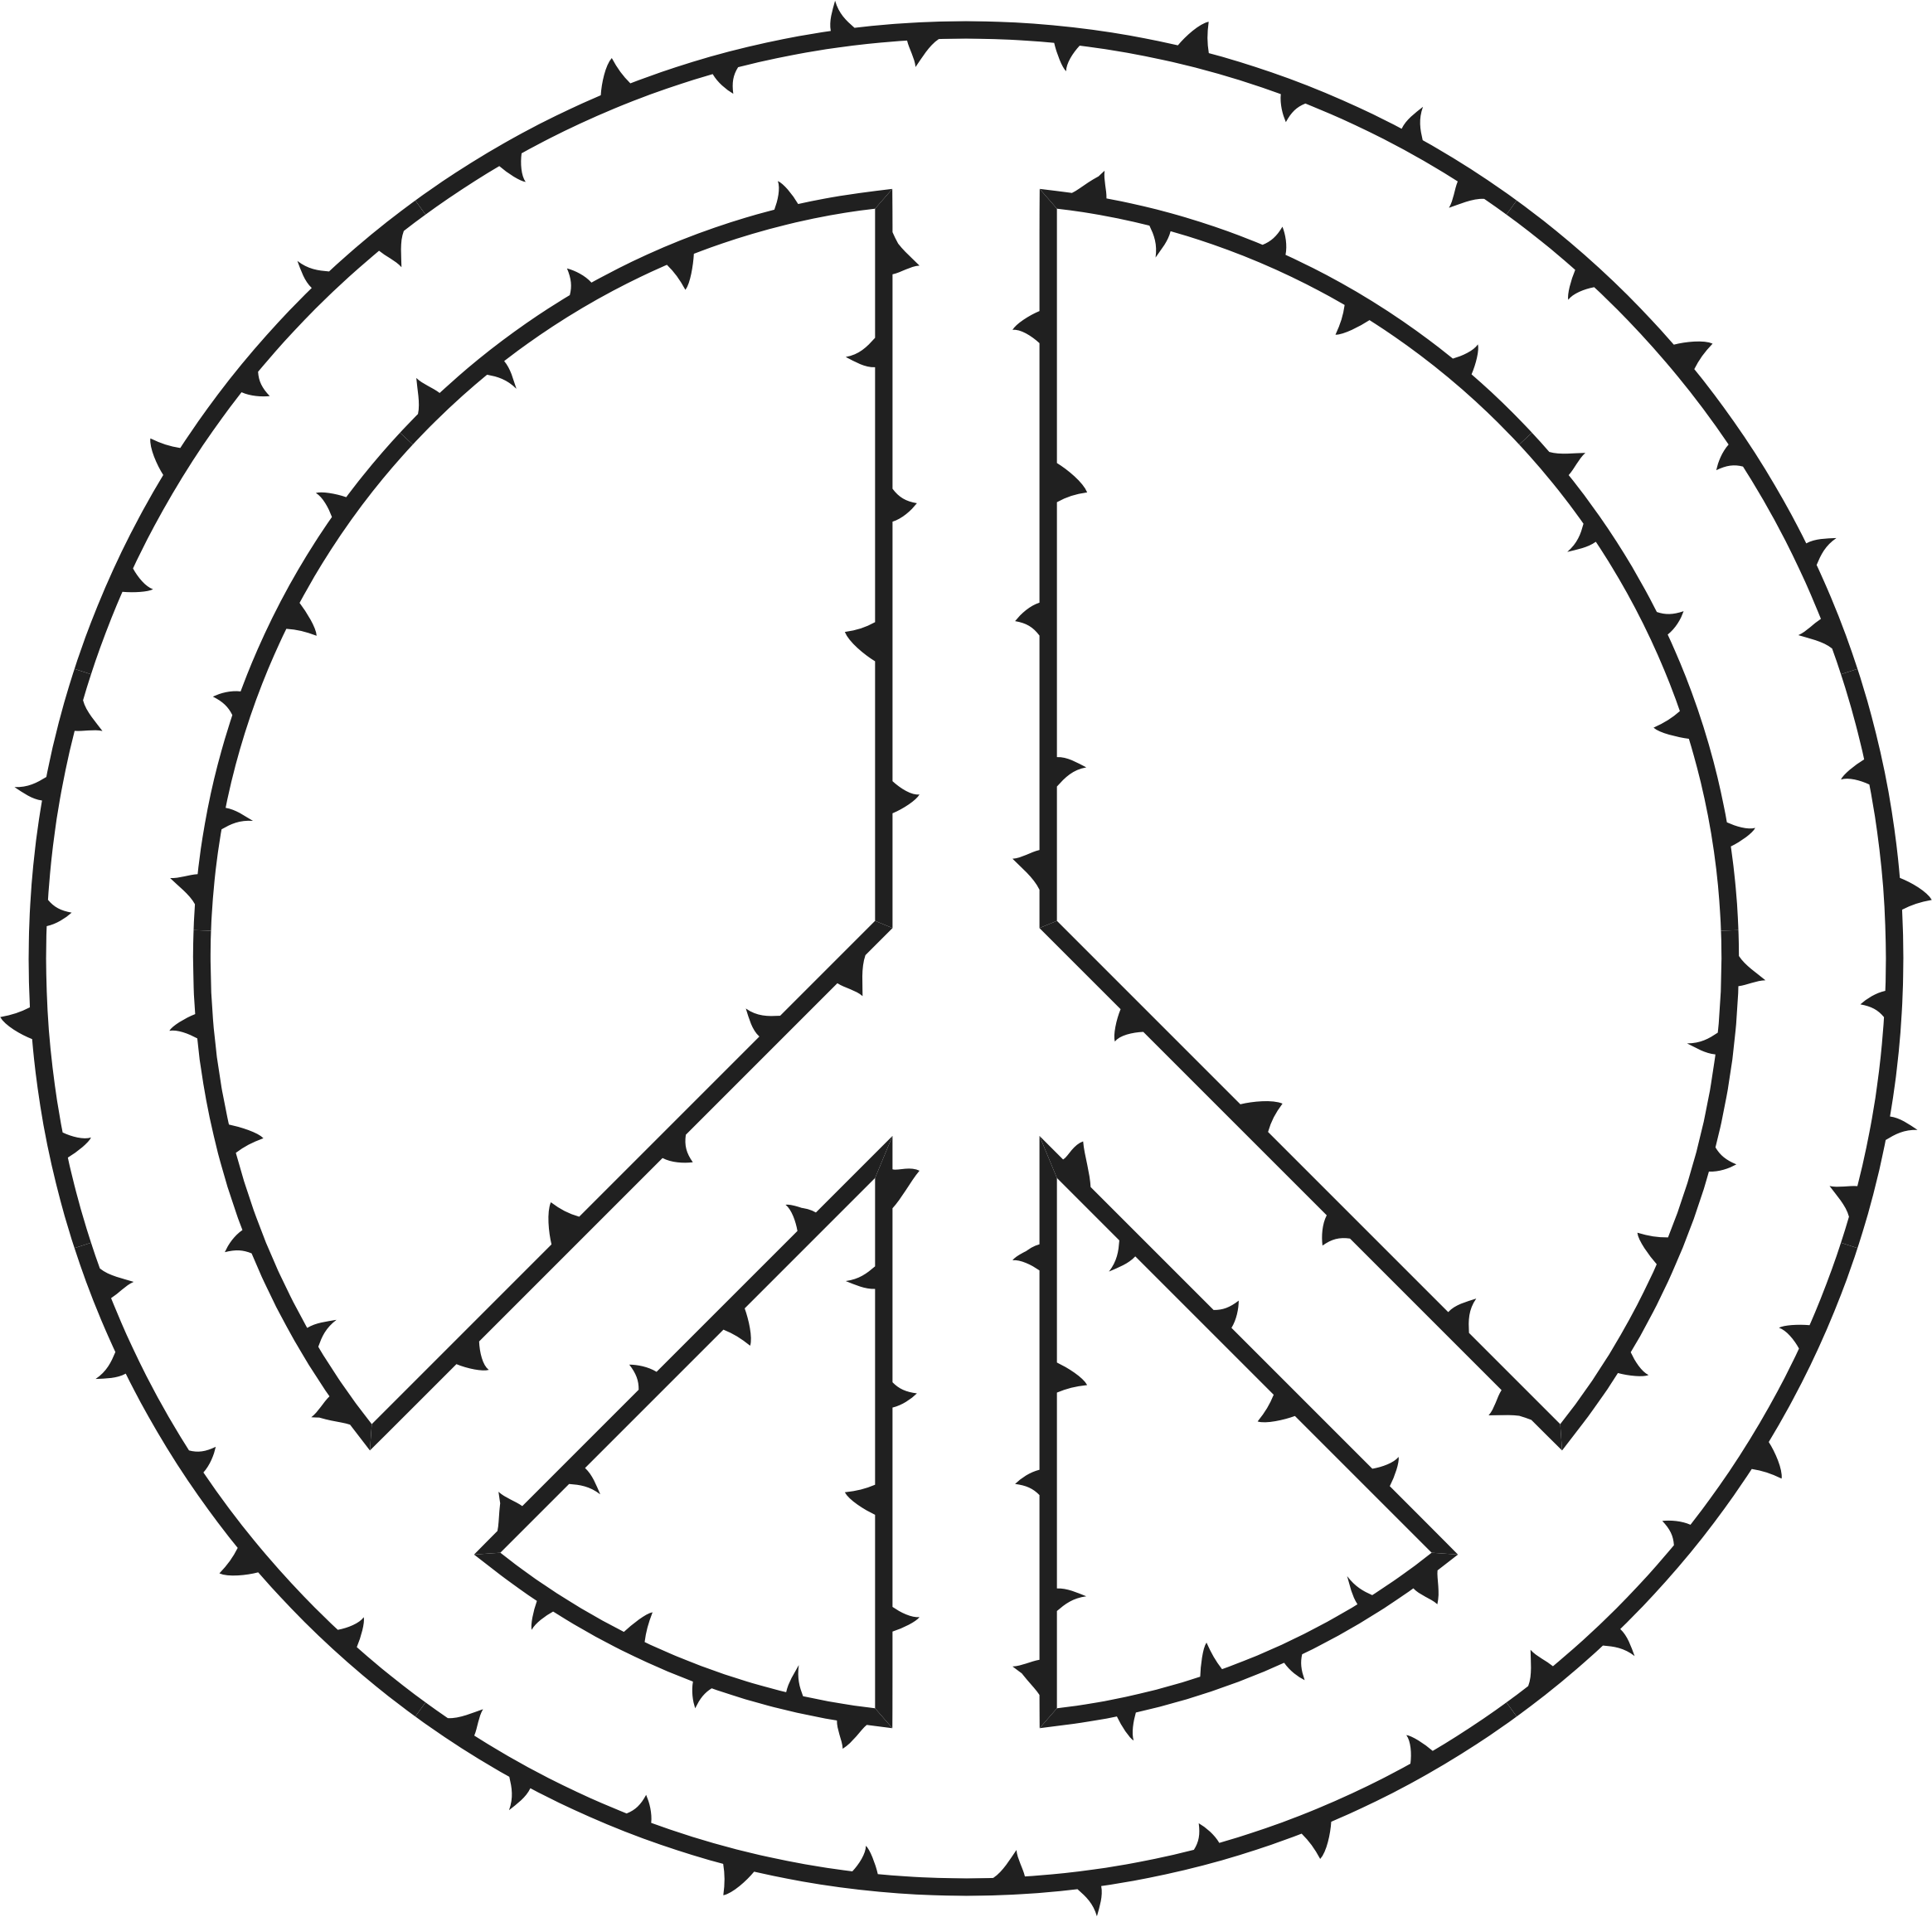 Peace clipart rite. Sign of thorns big